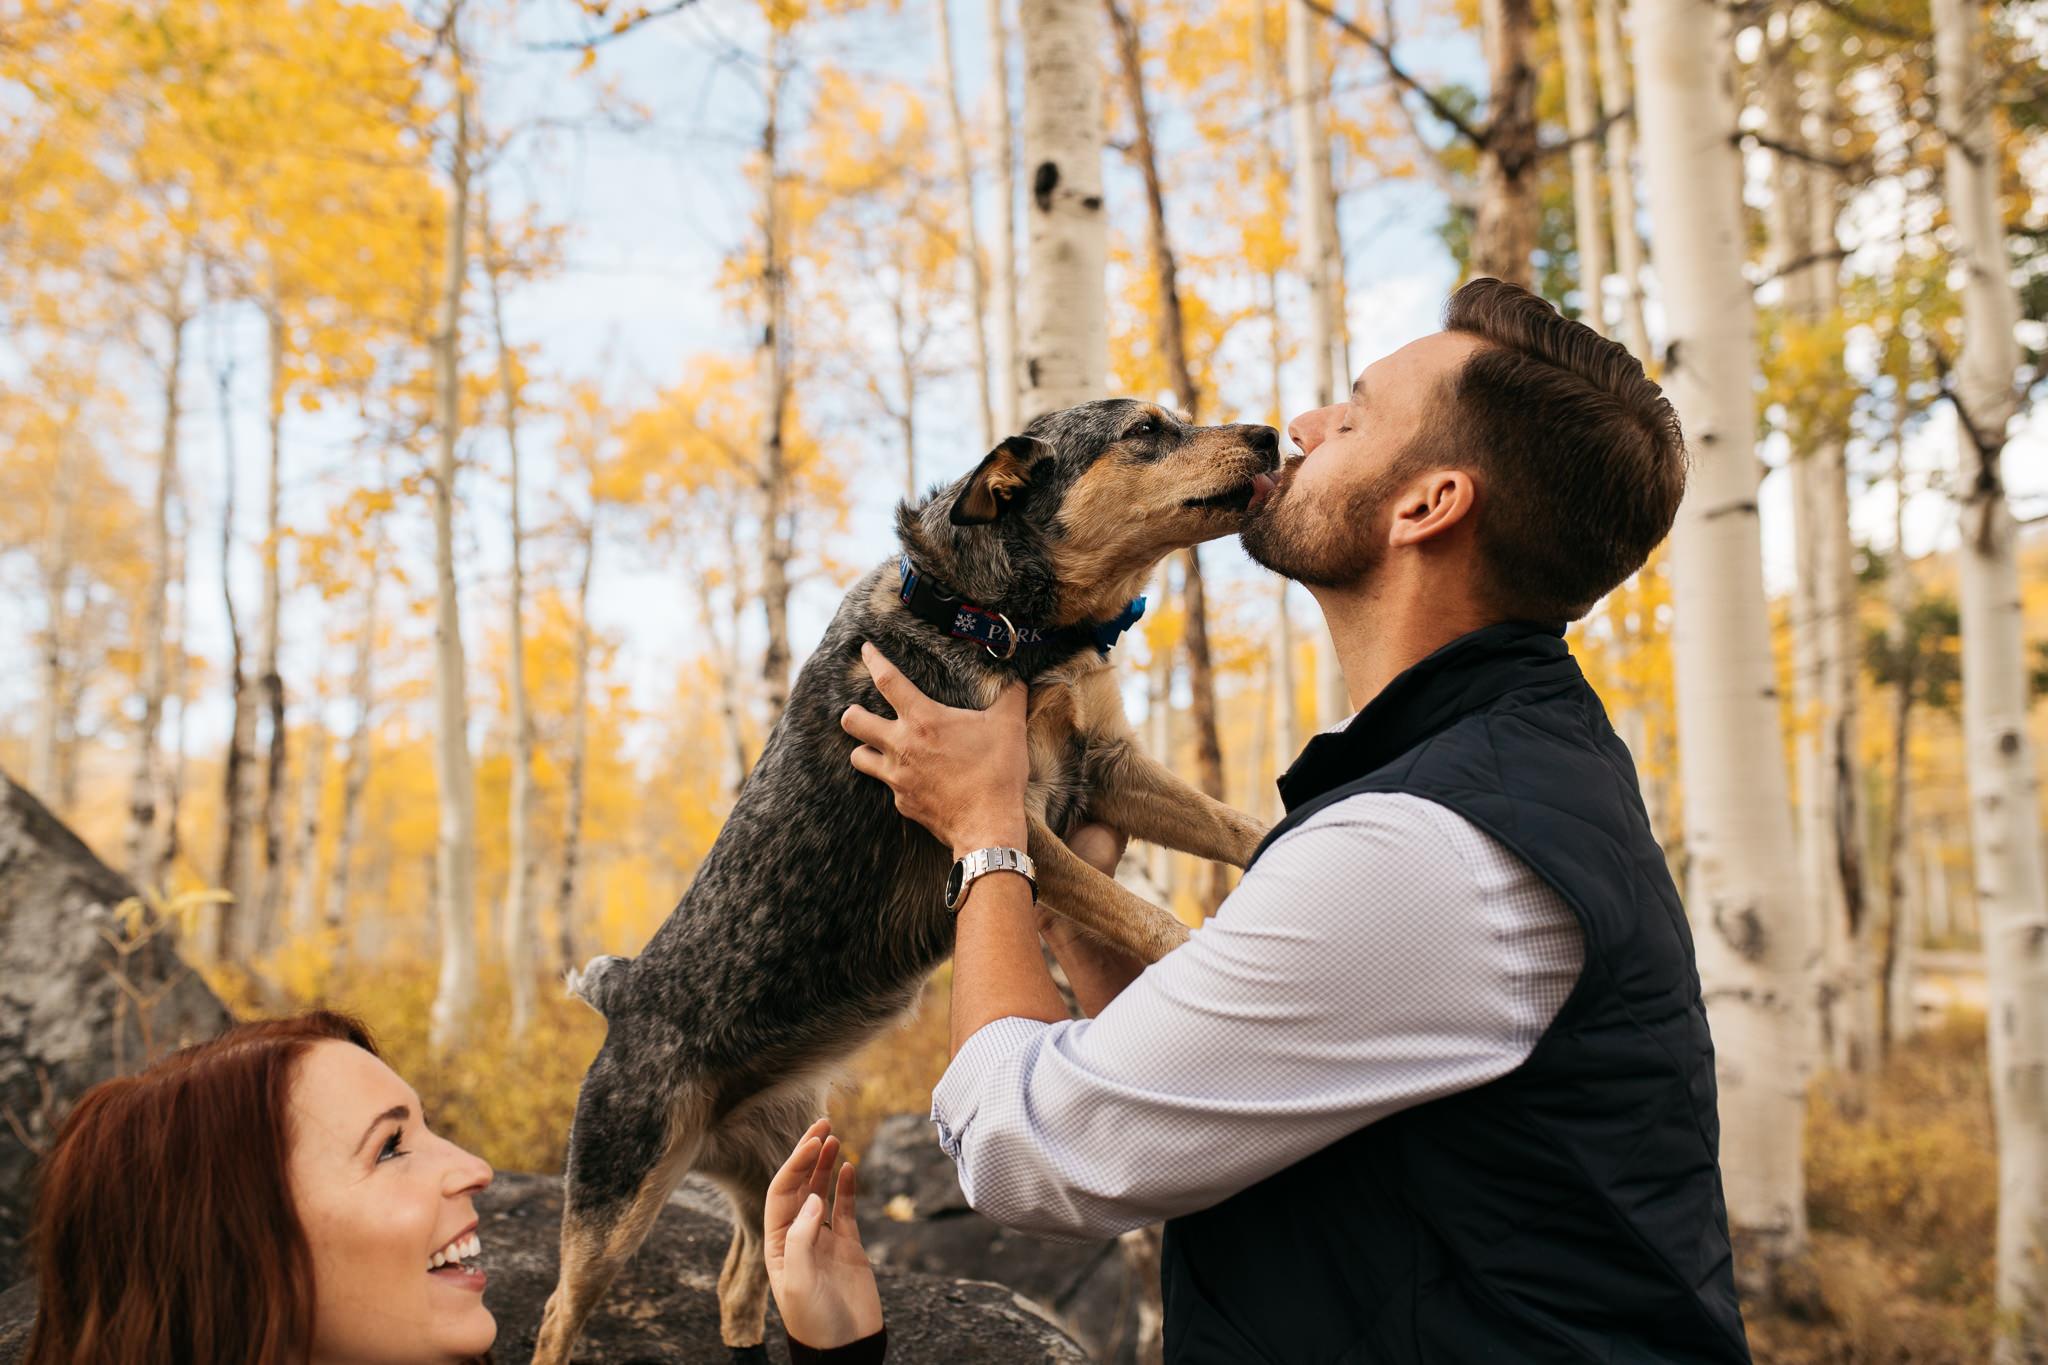 Park City engagement session photographed by Trevor Hooper Photo